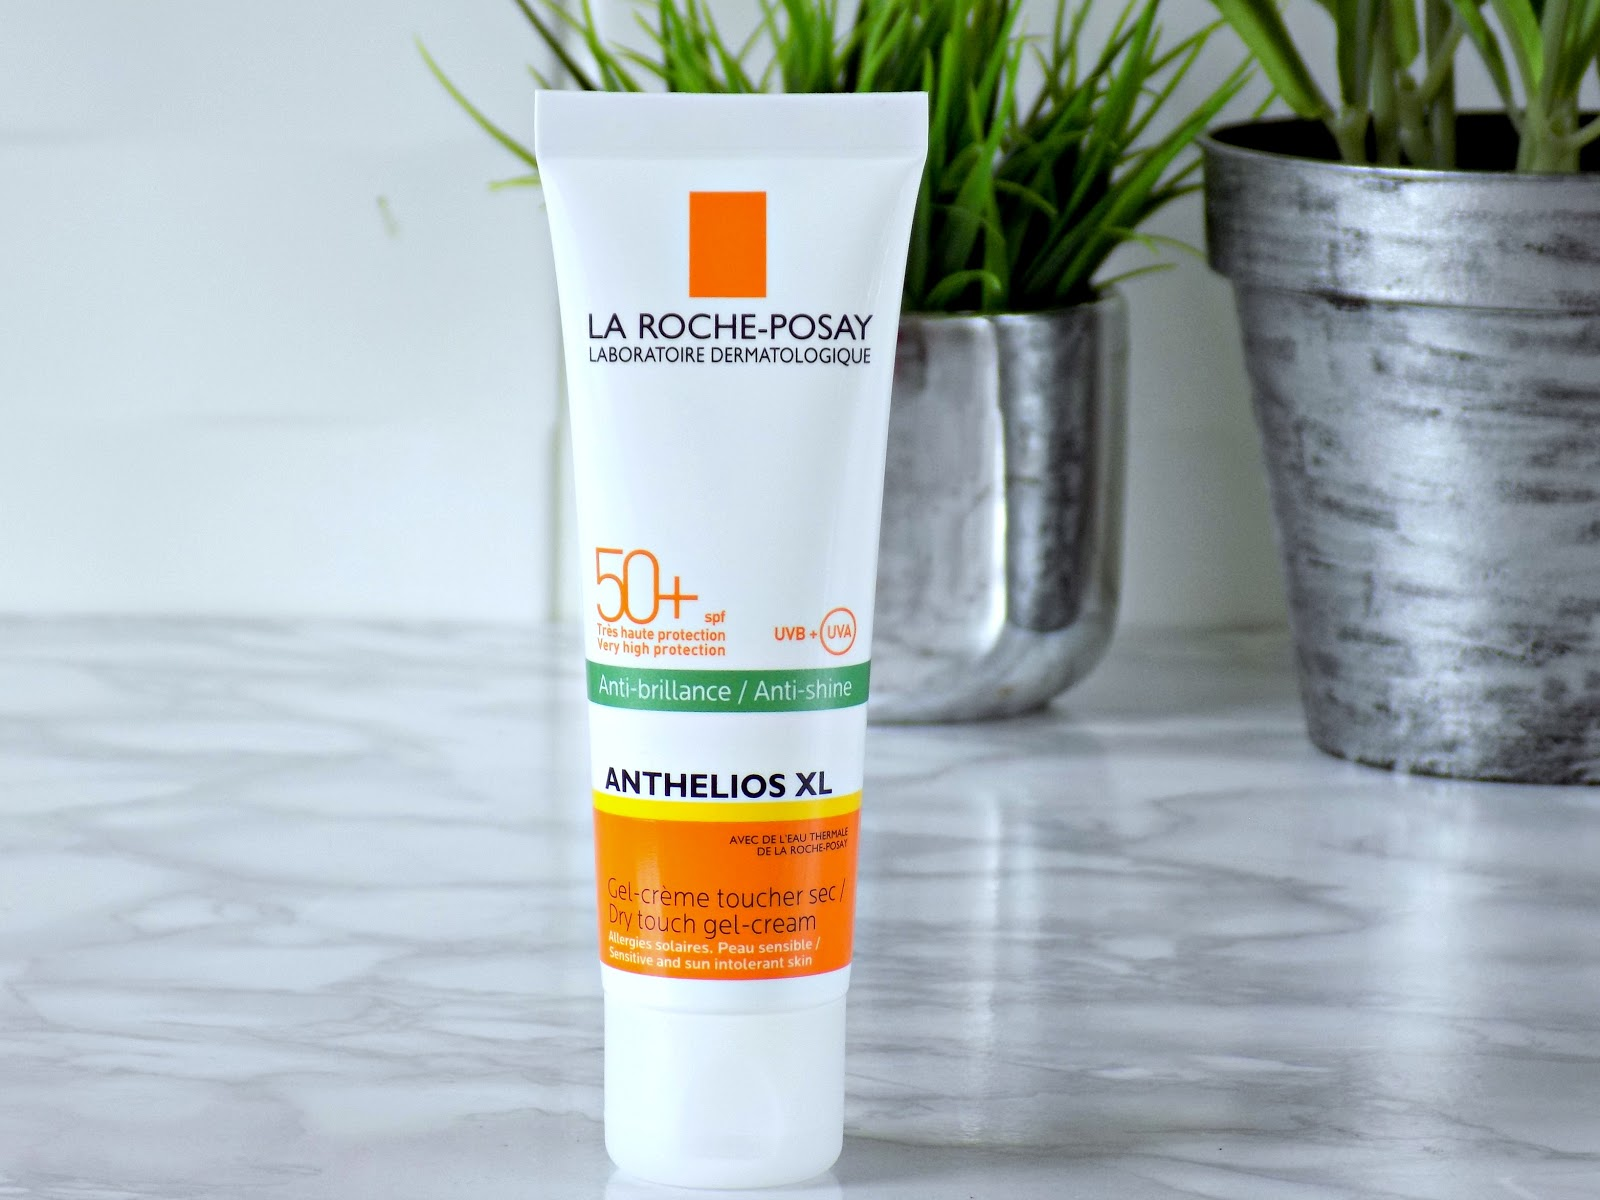 La Roche-Posay Anthelios XL SPF50 Dry Touch Gel Anti-Shine